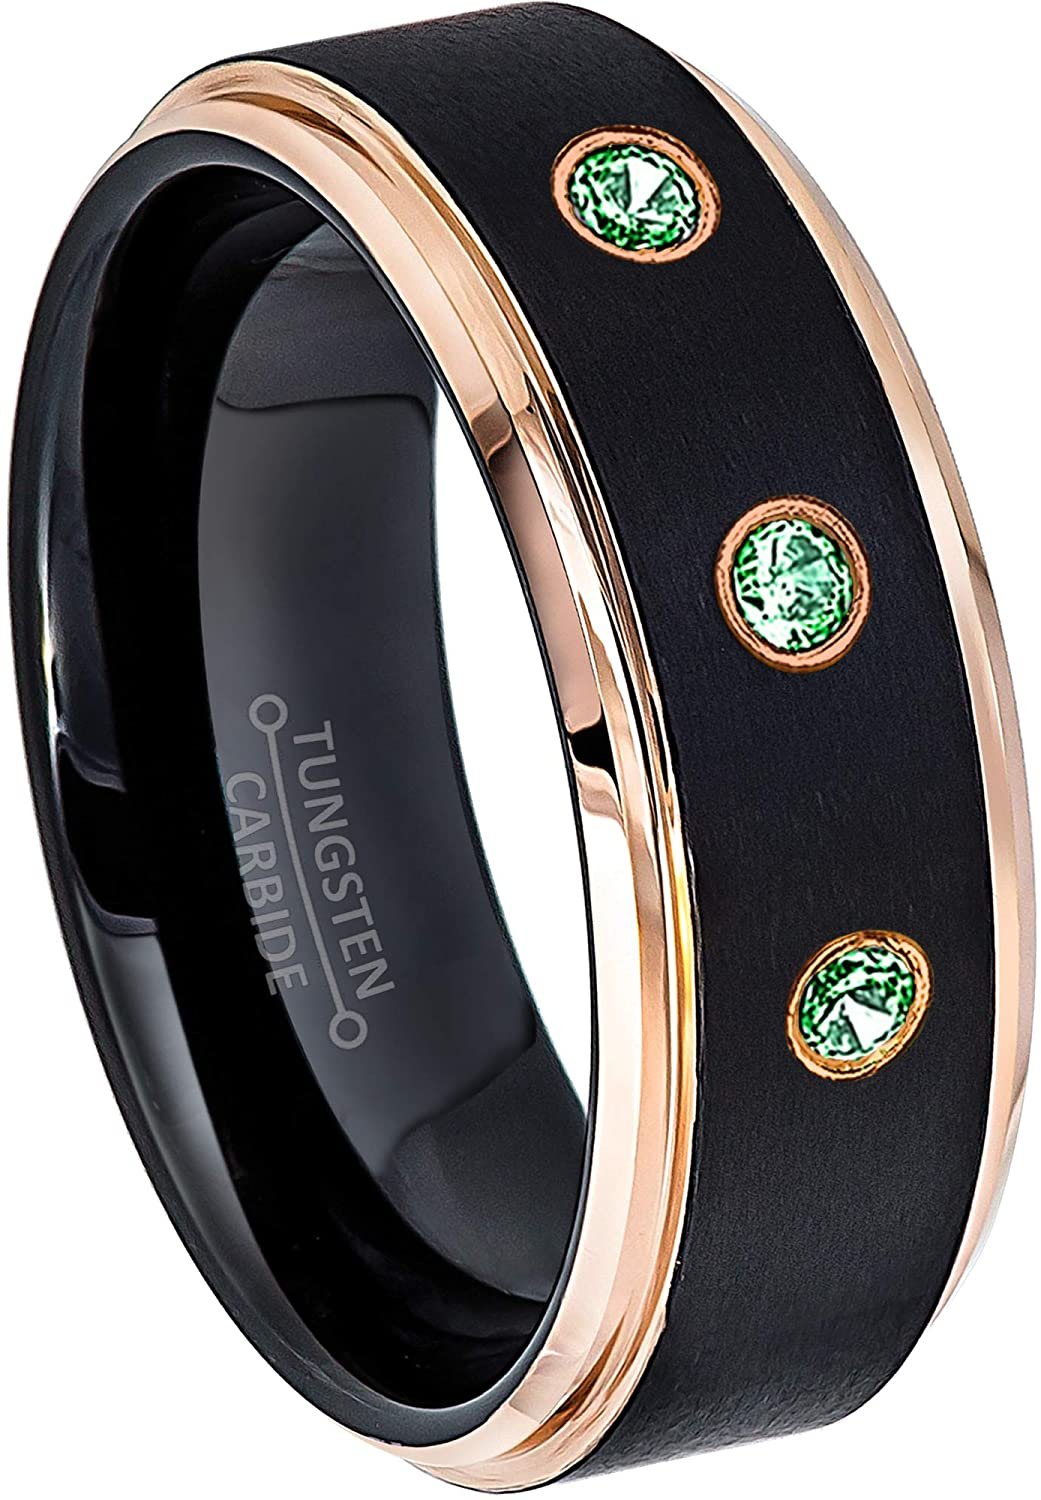 Jewelry Avalanche 0.21ctw Emerald 3-Stone Tungsten Ring - May Birthstone Ring - 8MM Comfort Fit Matte 2-Tone Black & Rose Gold Stepped Edge Tungsten Carbide Wedding Band